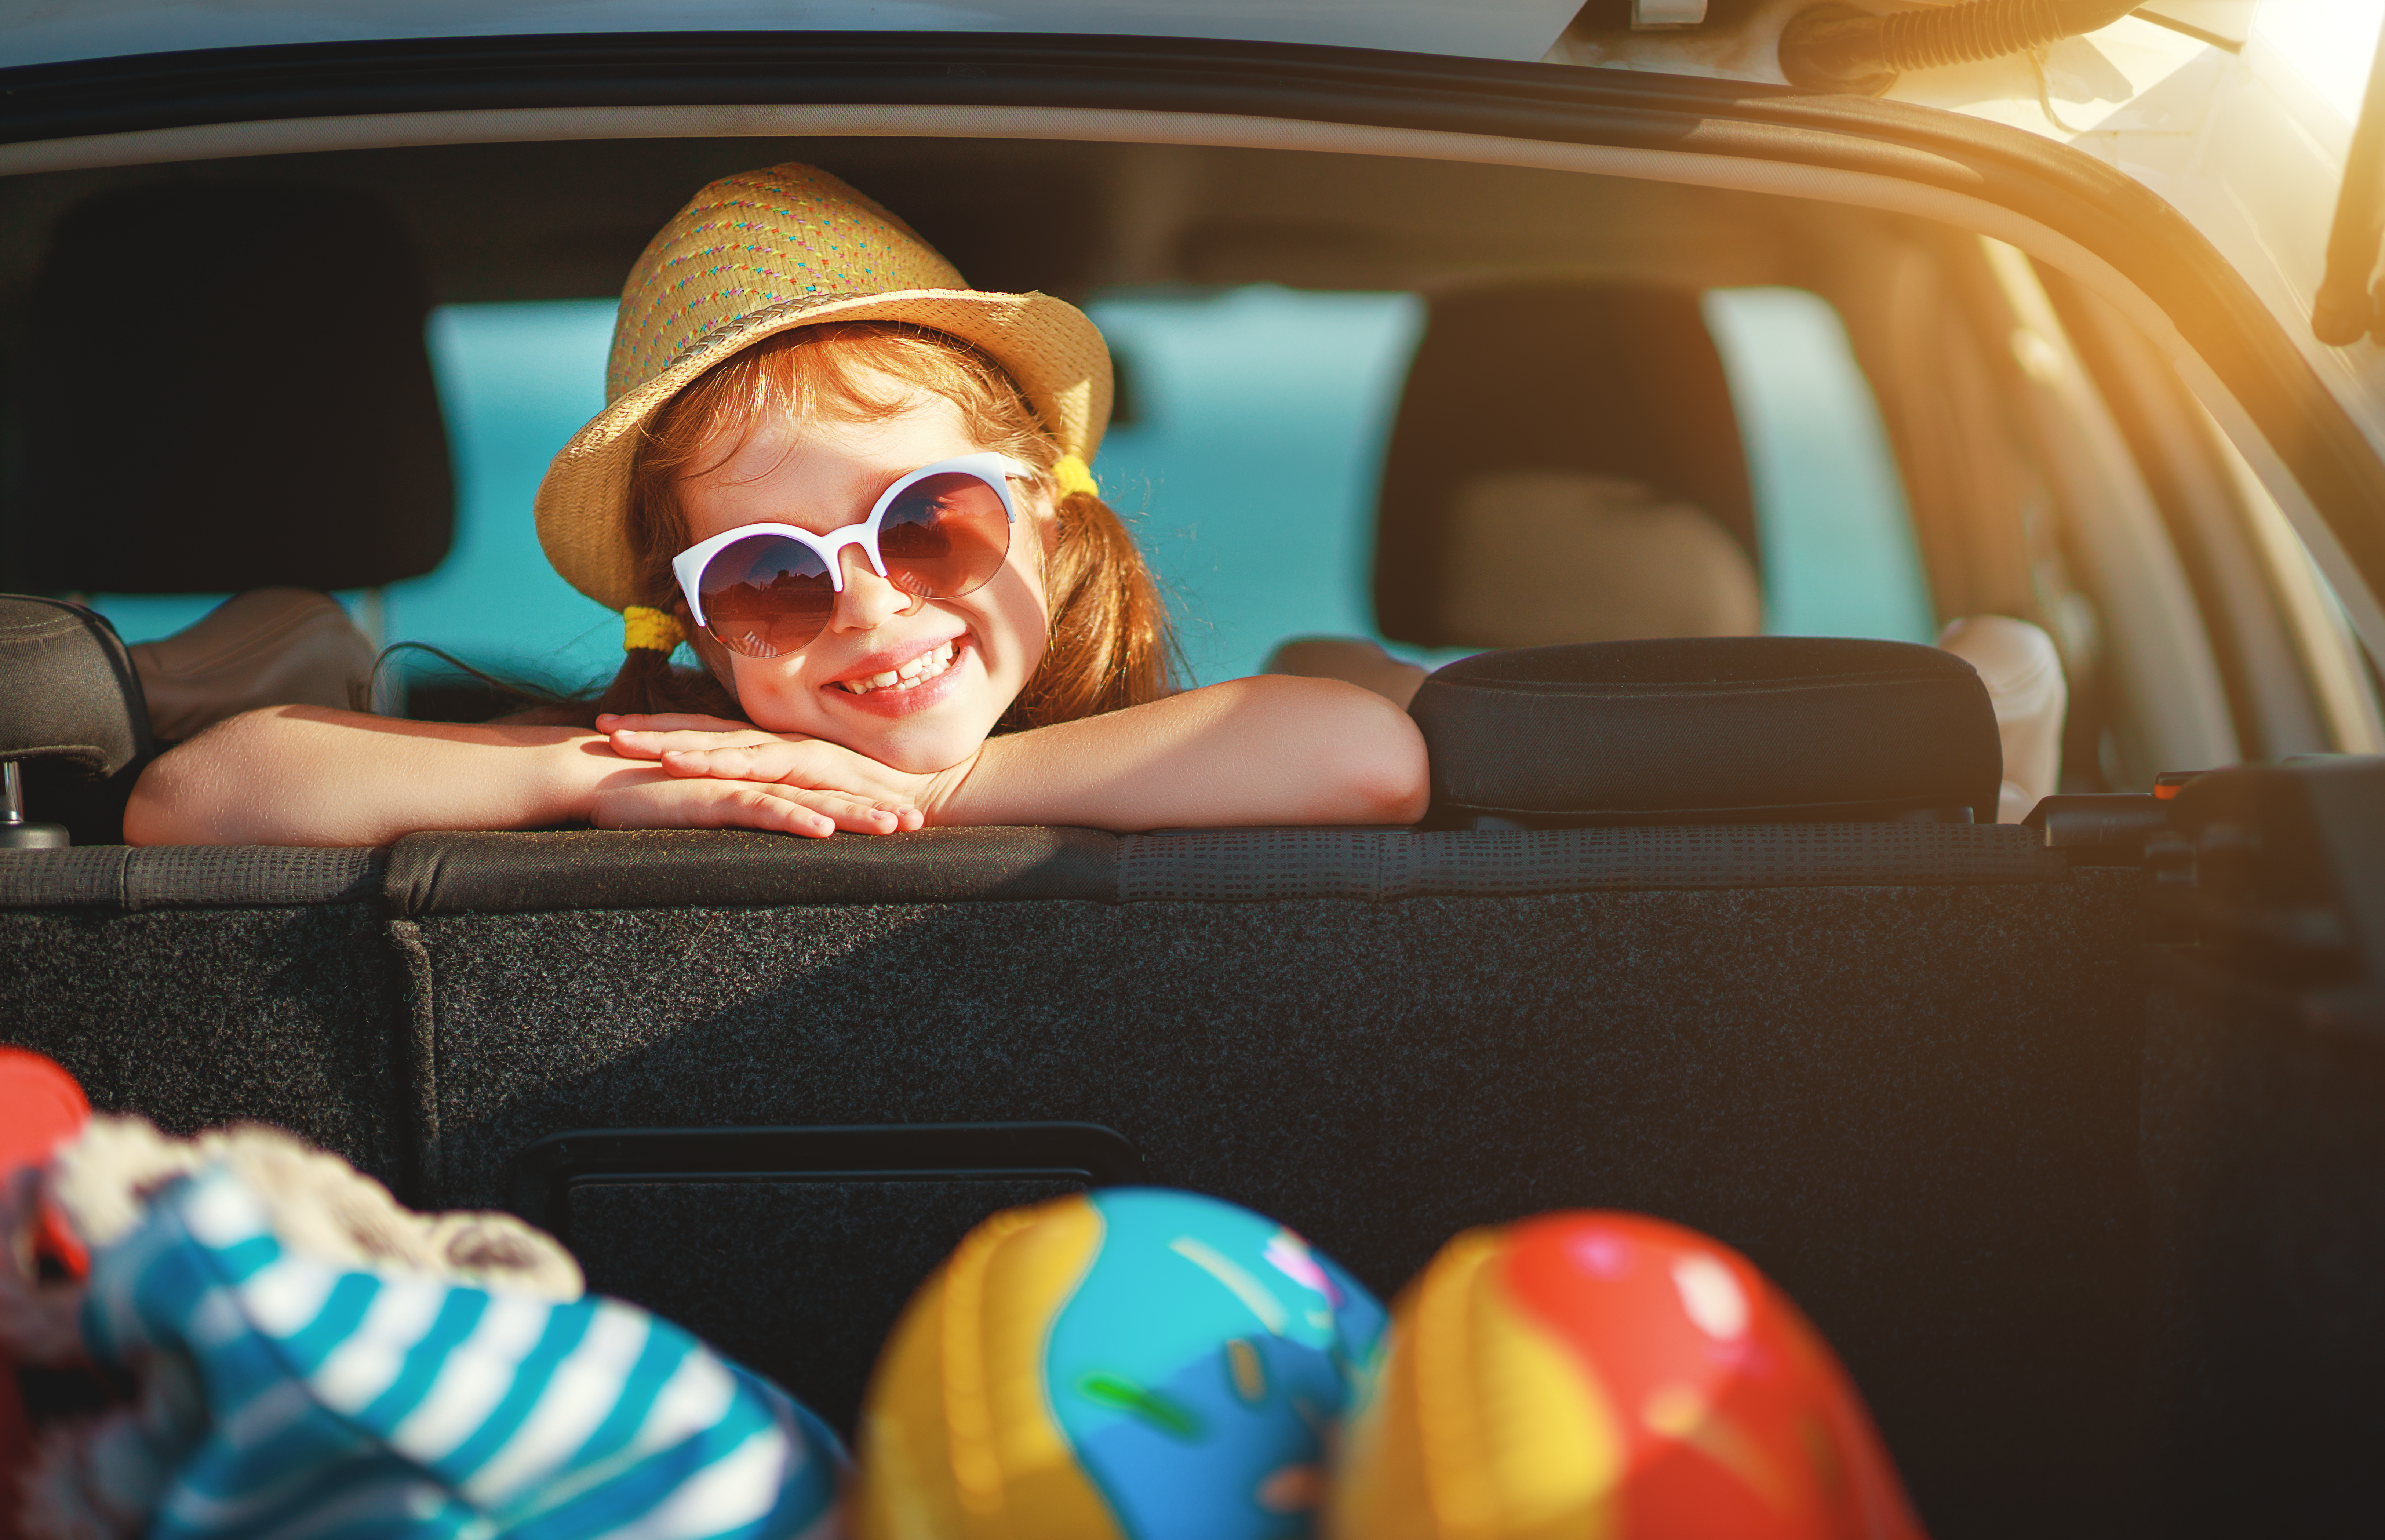 Young child in looking over backseat of car